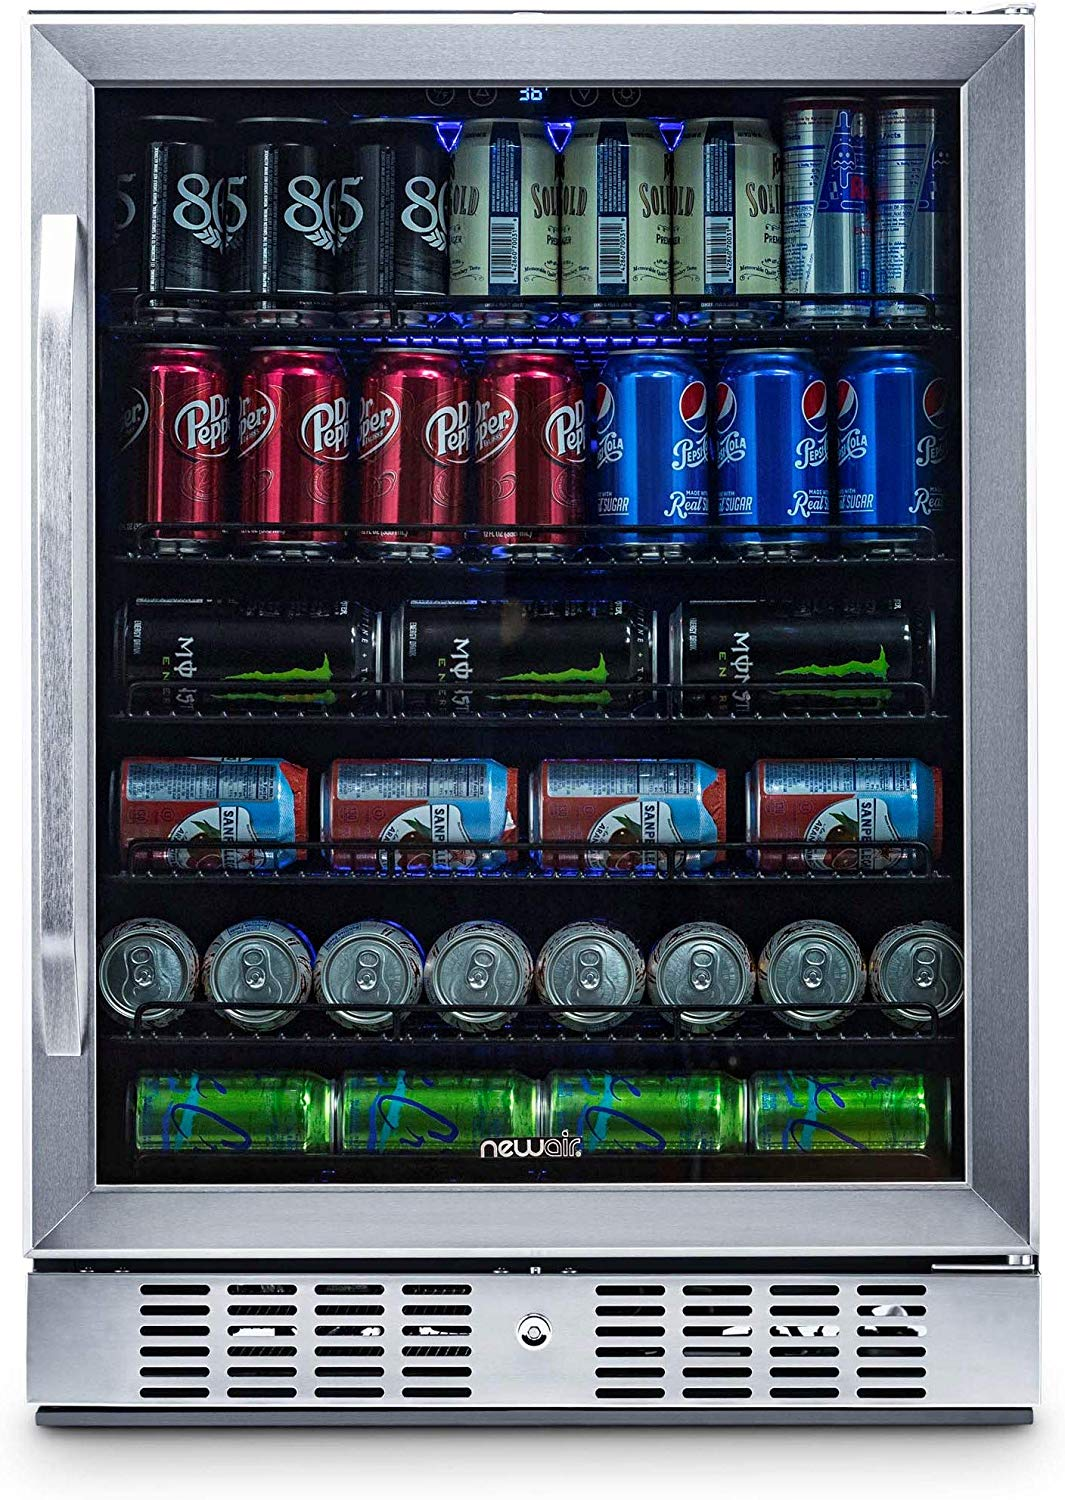 NewAir Built-In Beverage Cooler and Refrigerator